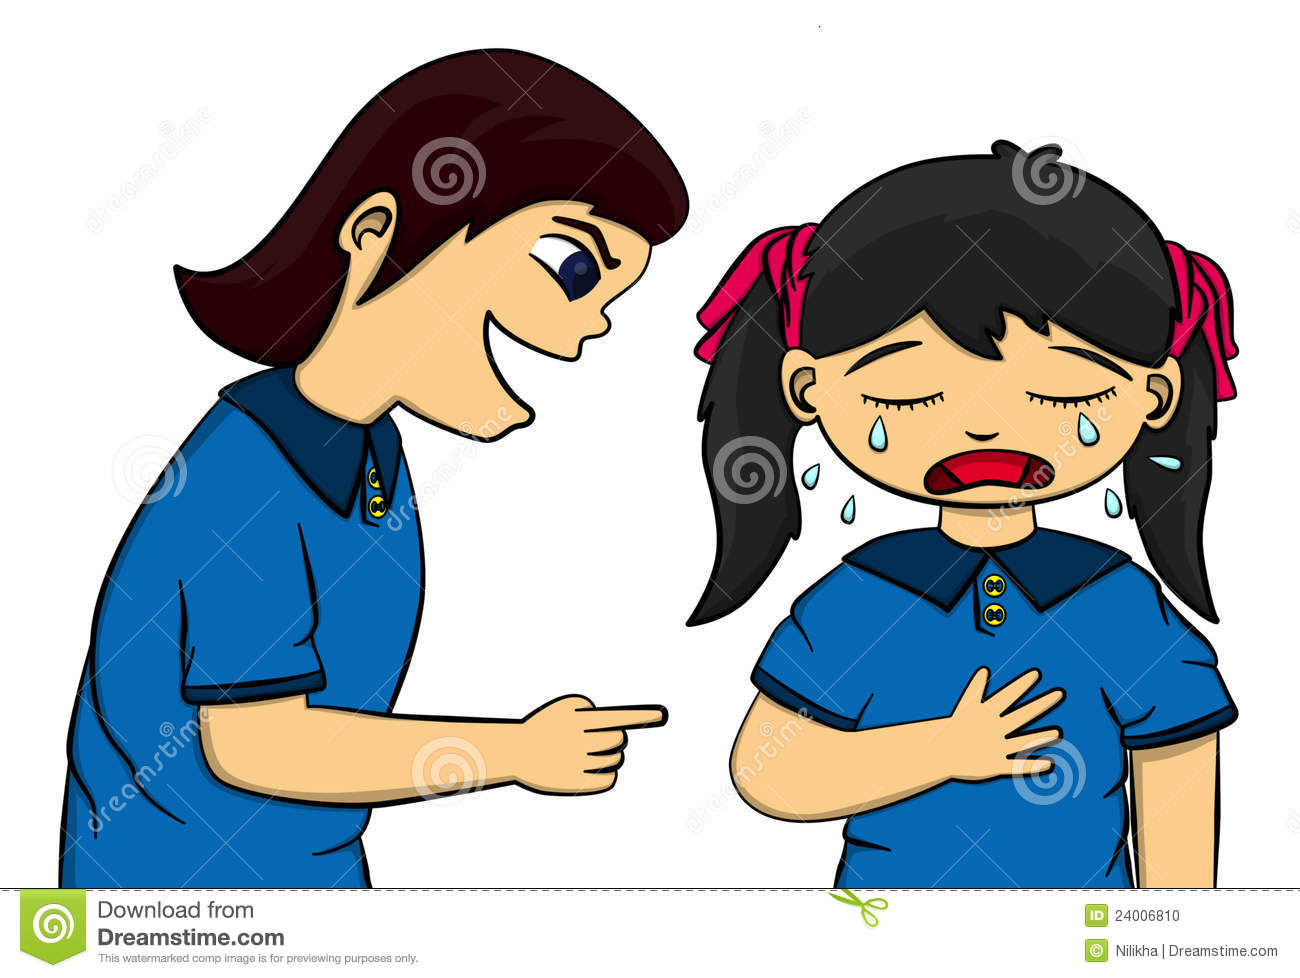 Stop Bullying Cartoon Clip Art - Bing images